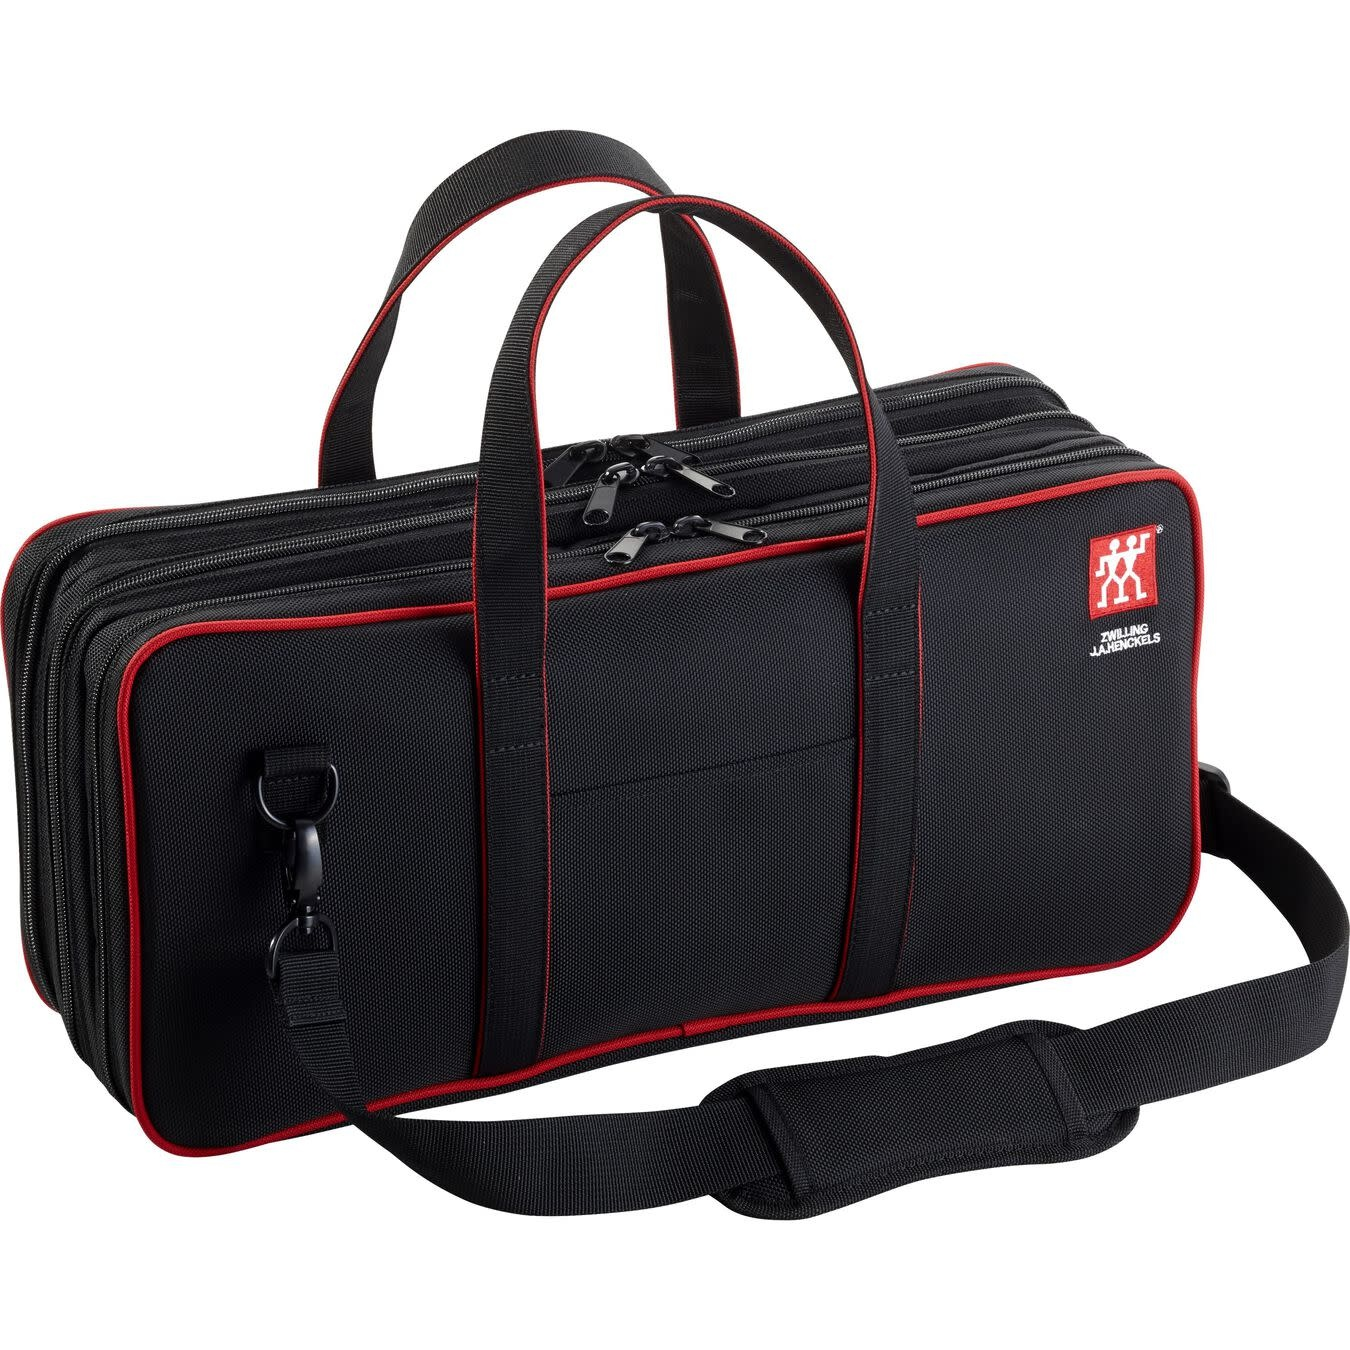 Zwilling J.A. Henckels Professional 3 Compartment Knife Bag